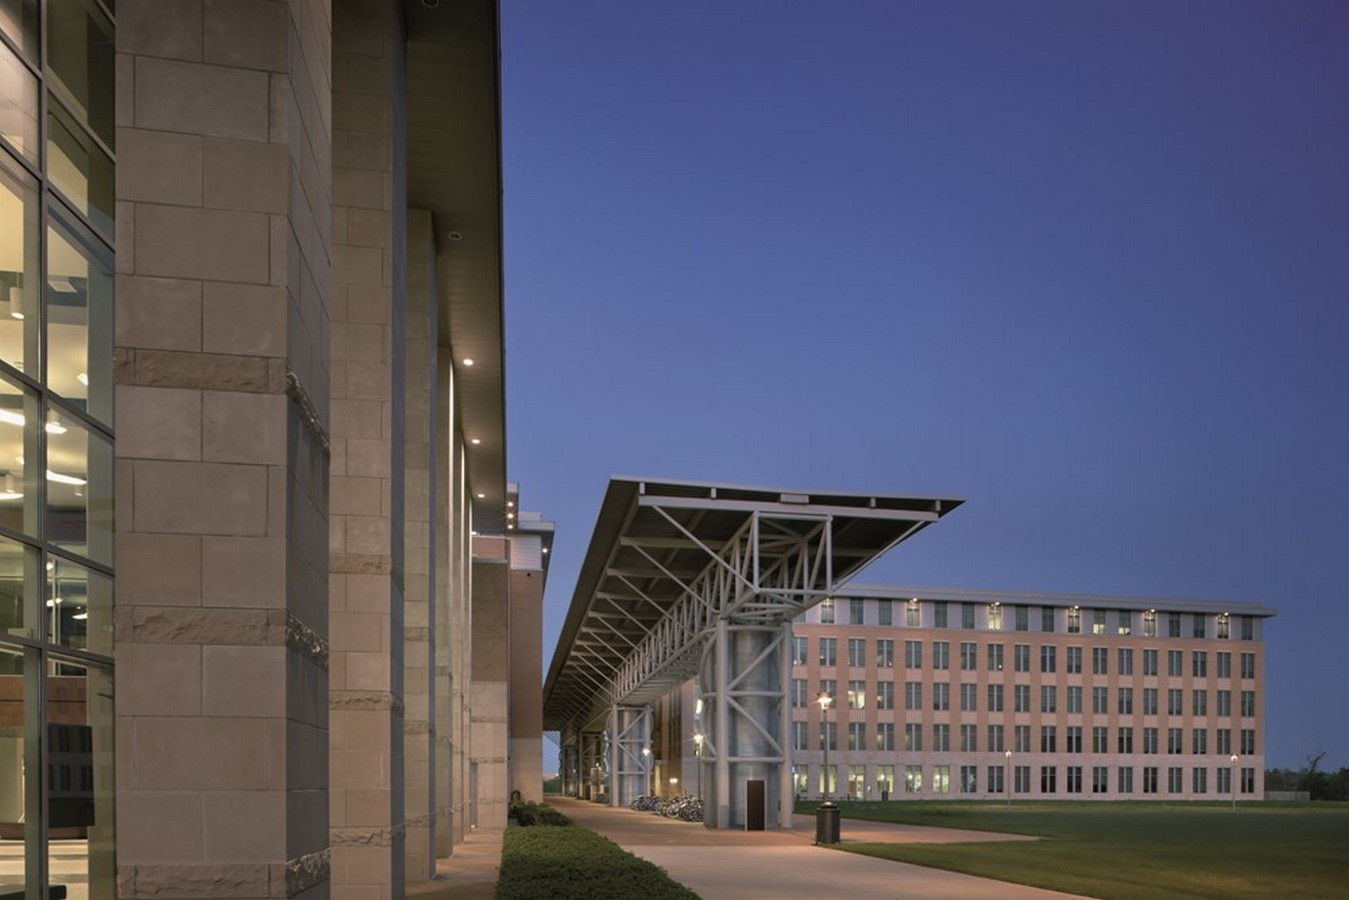 TEXAS A&M UNIVERSITY AGRICULTURE AND LIFE SCIENCES COMPLEX - Sheet3